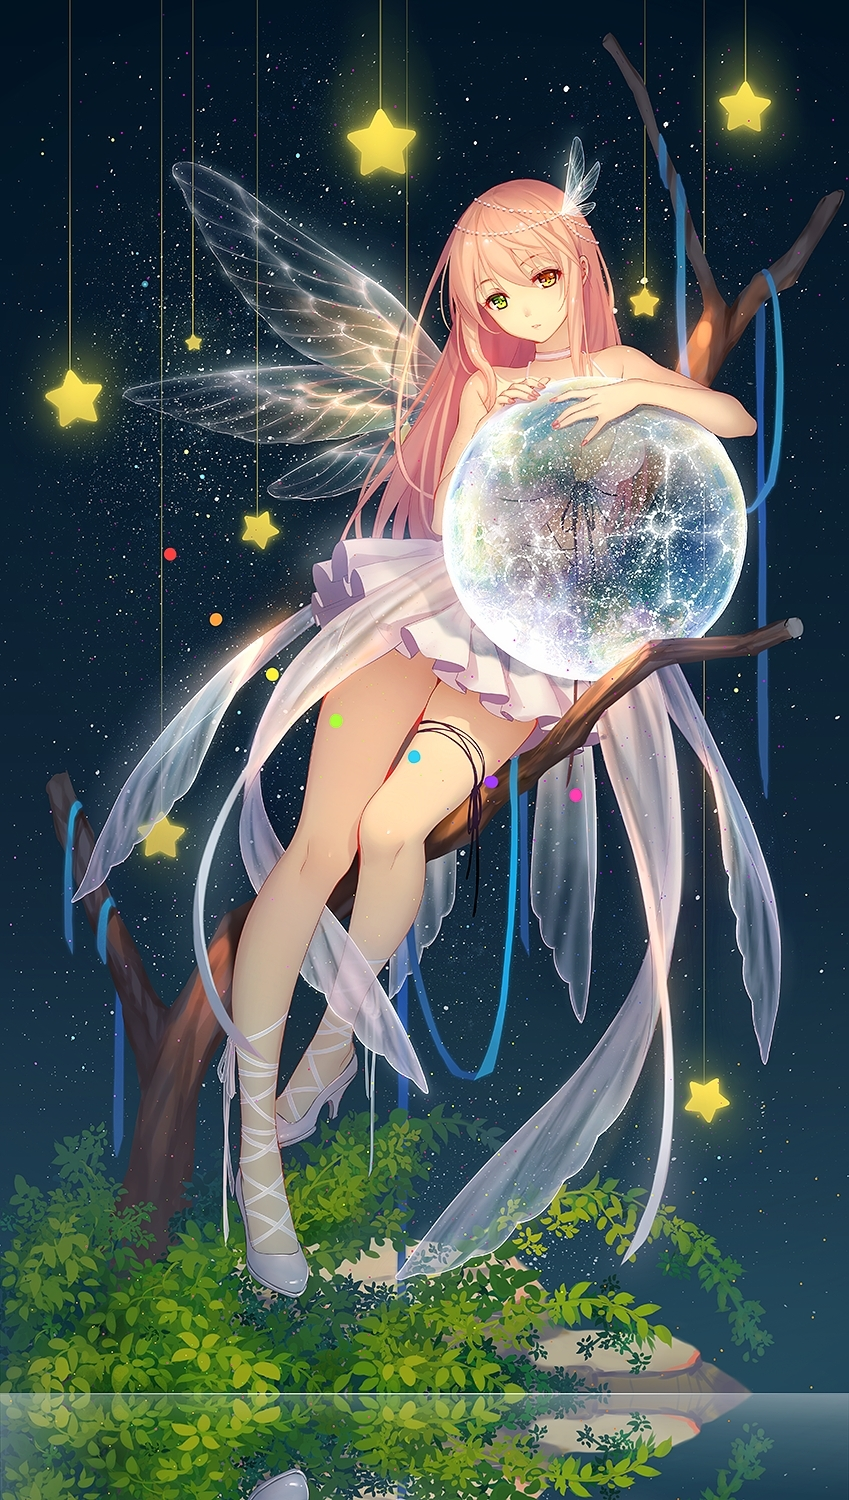 Solo, Female, Girl, Long Hair, Pink Hair, Heterochromia, Multi-colored Eyes, Skirt, Sitting, Tree, Trees, Stars, Sky, Stars (Sky), Shoes, High Heels, Fairy Wings, Hair Ornament, Choker, Nail Polish, Original Character, Rocks, Holding Something, Bare Shoulders, Ribbons, Blue Ribbon, One Girl